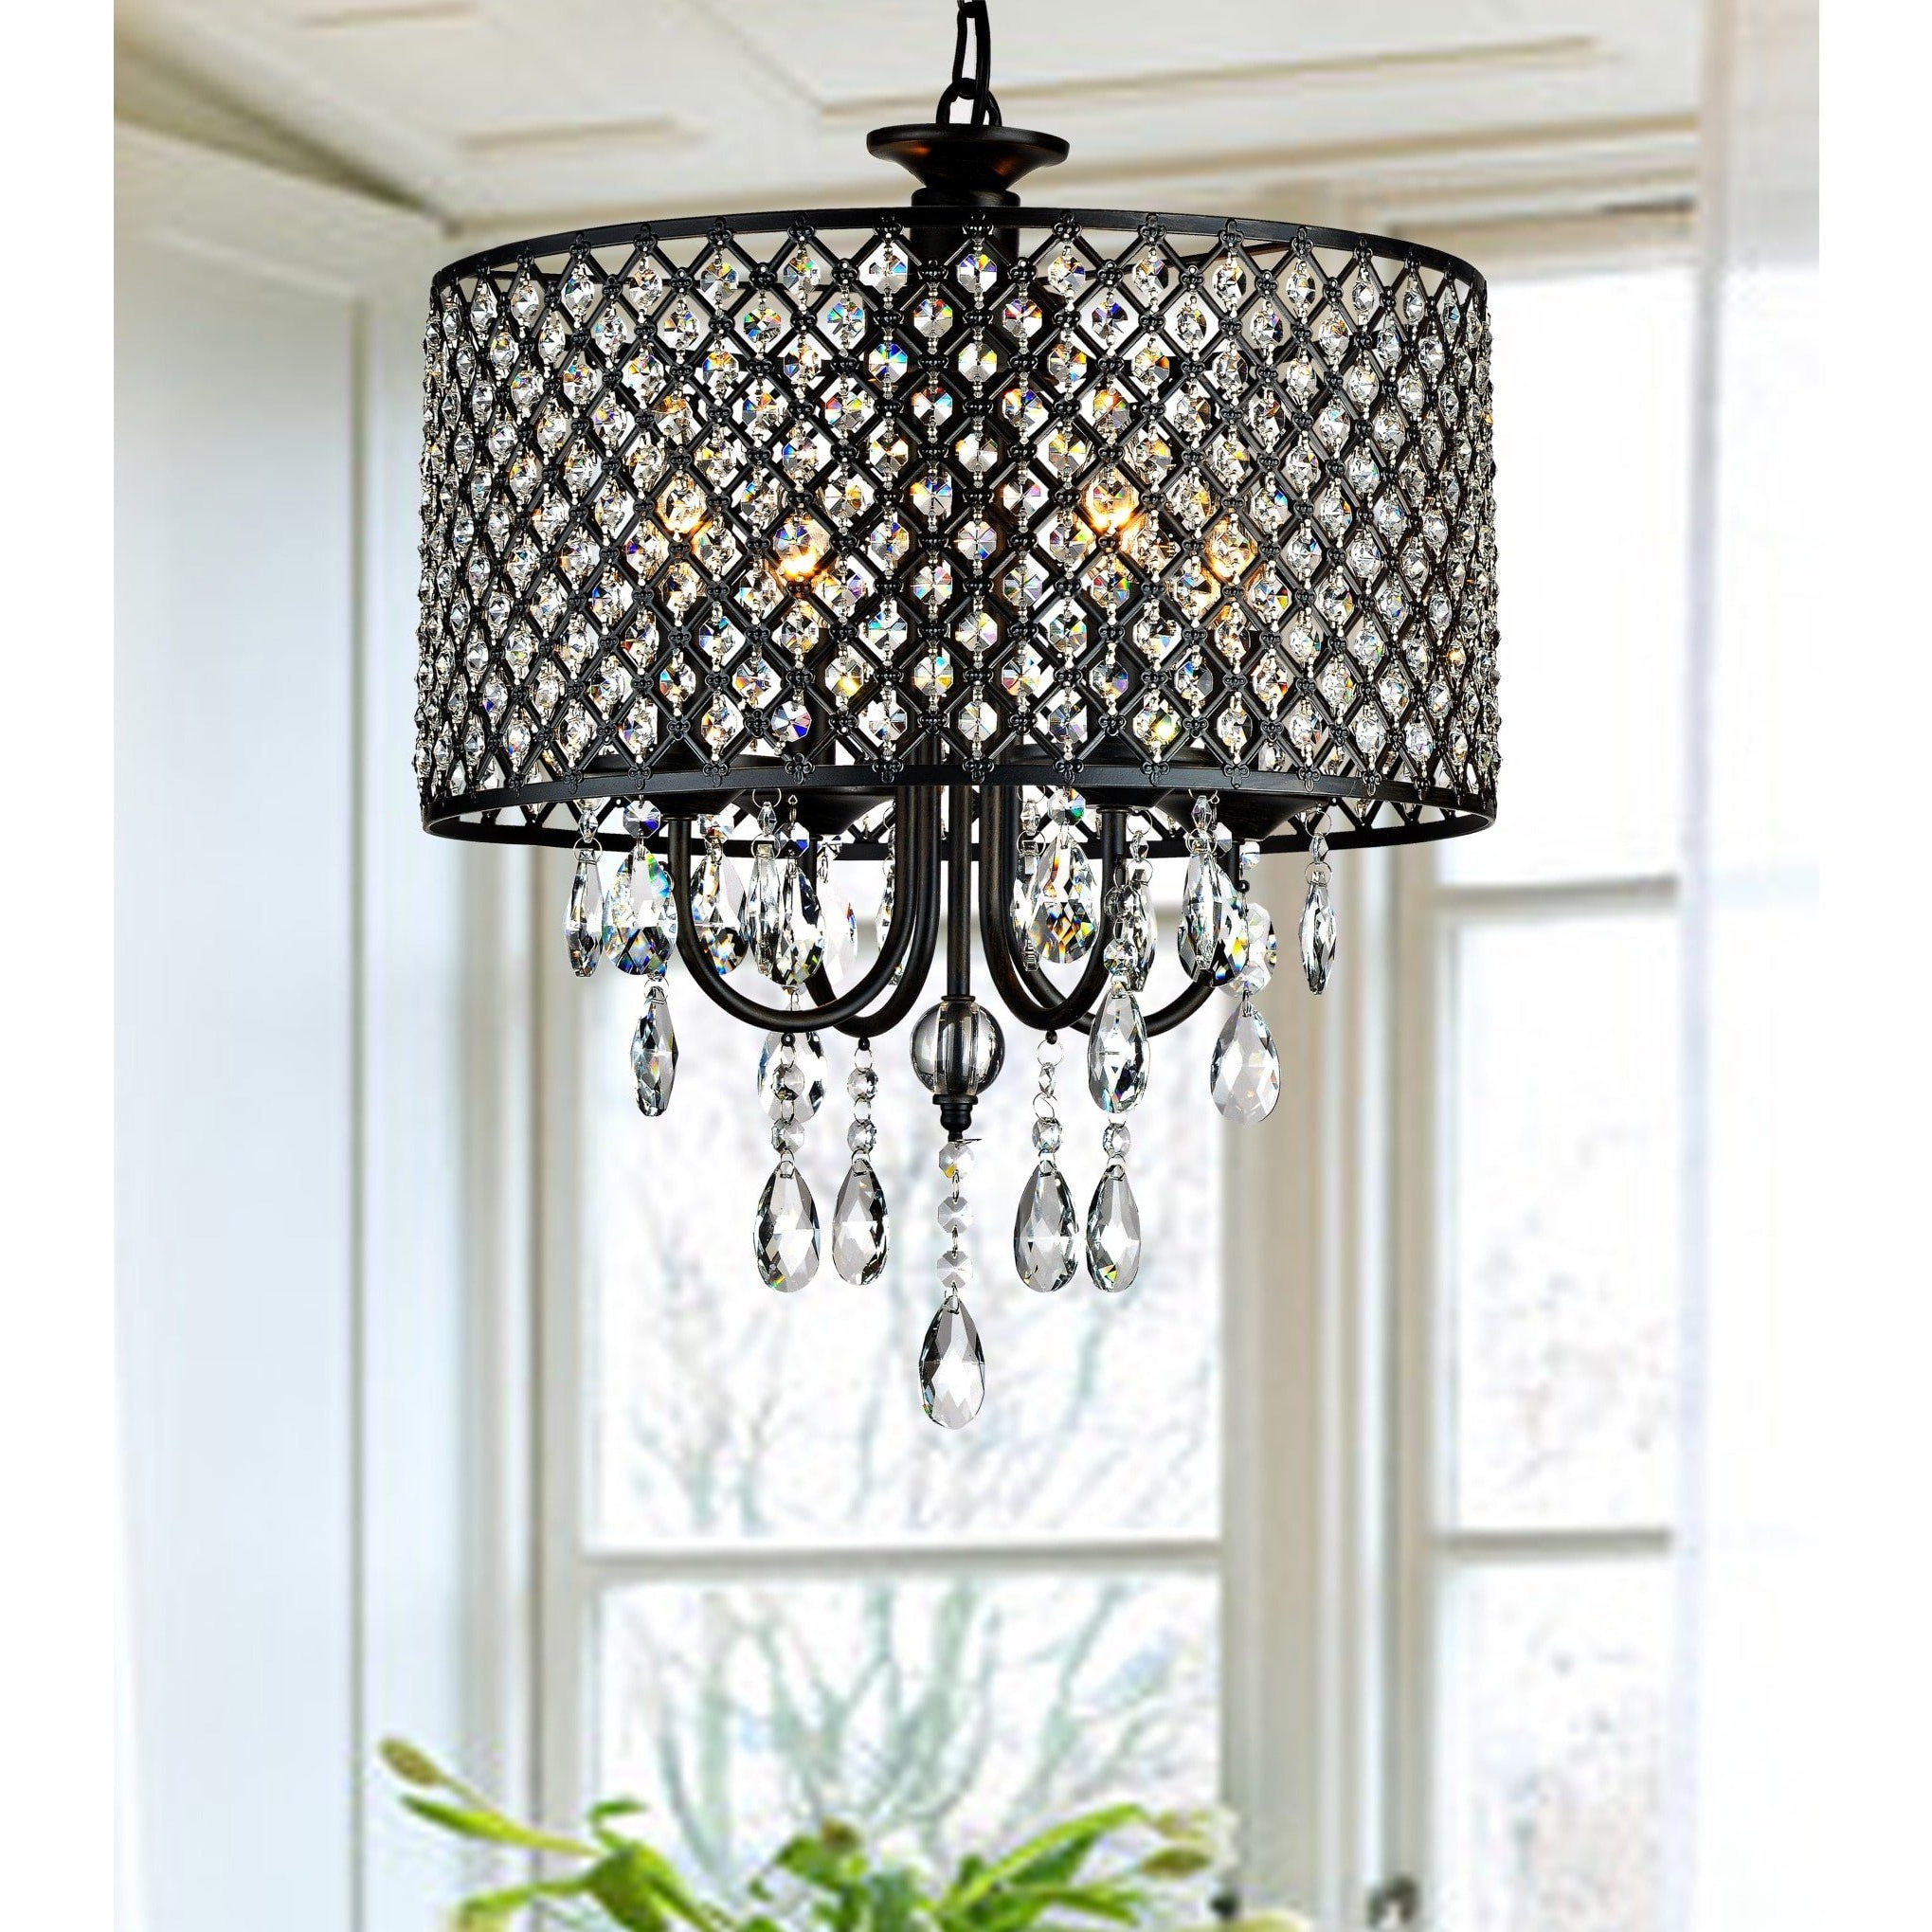 Albano 4 Light Crystal Chandeliers Pertaining To Trendy Mckamey 4 Light Crystal Chandelier (View 2 of 20)